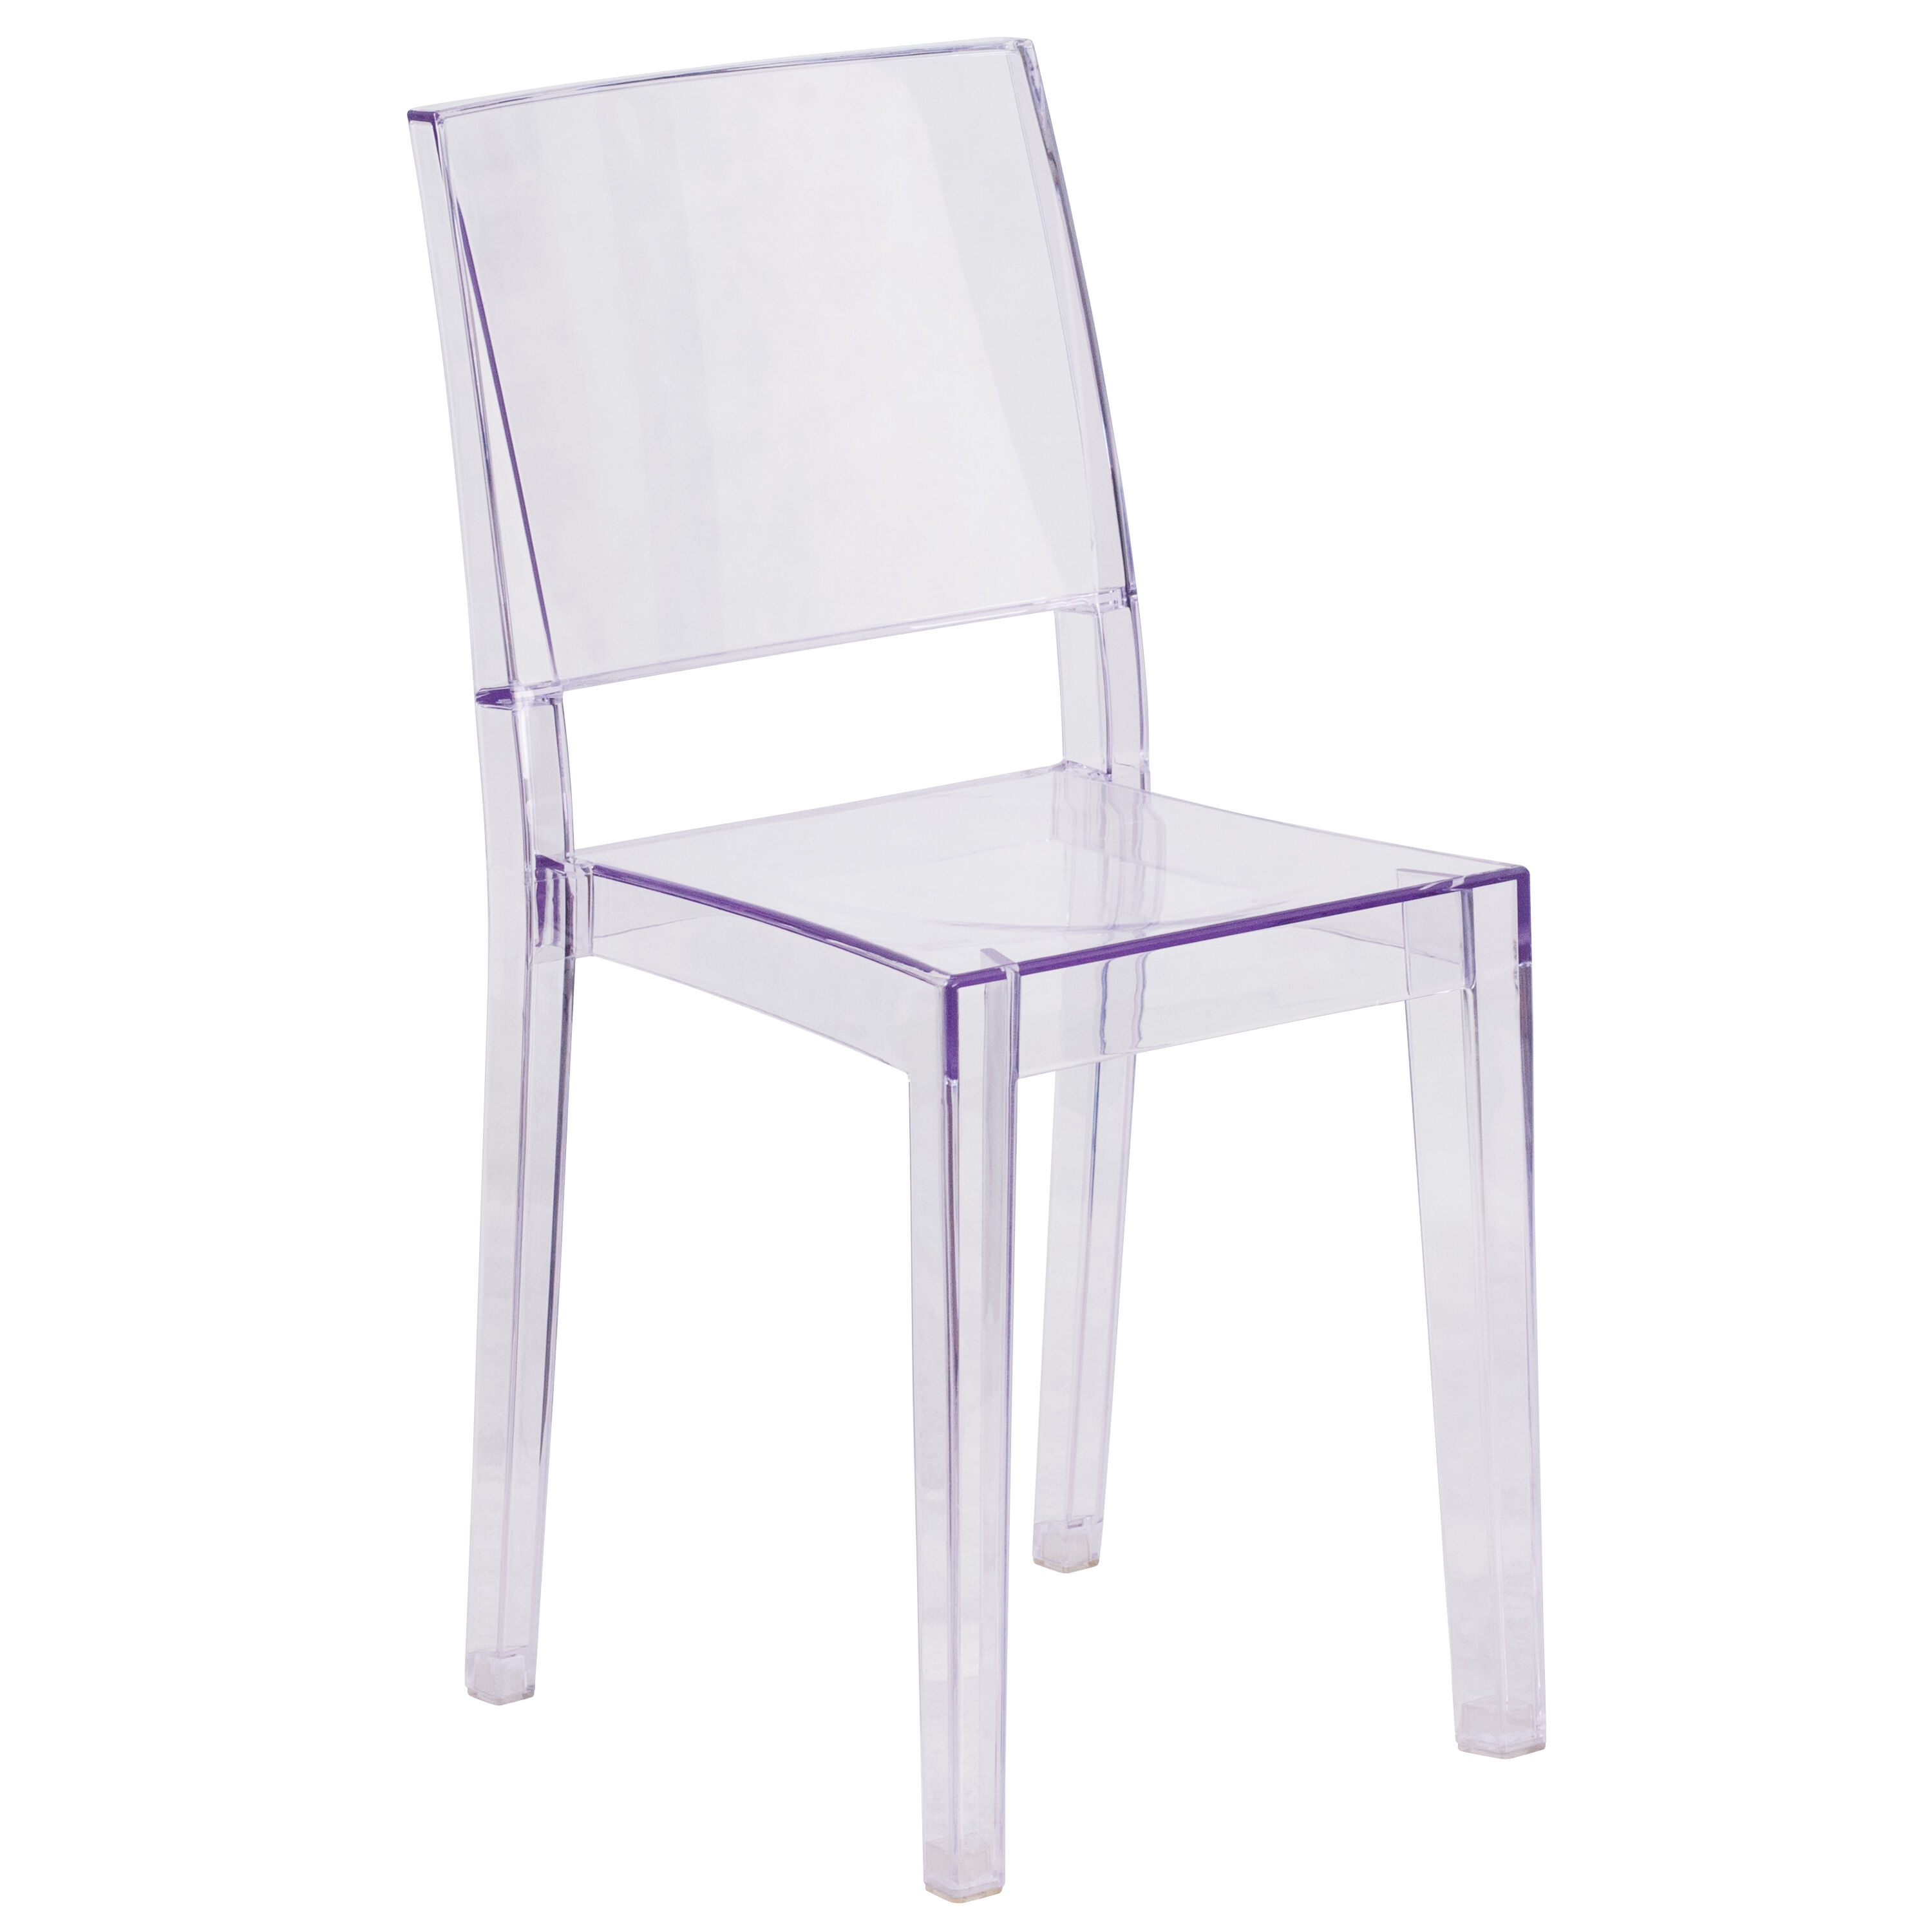 chair covers for plastic stacking chairs refurbished barber stackchairs4less stack phantom series transparent side